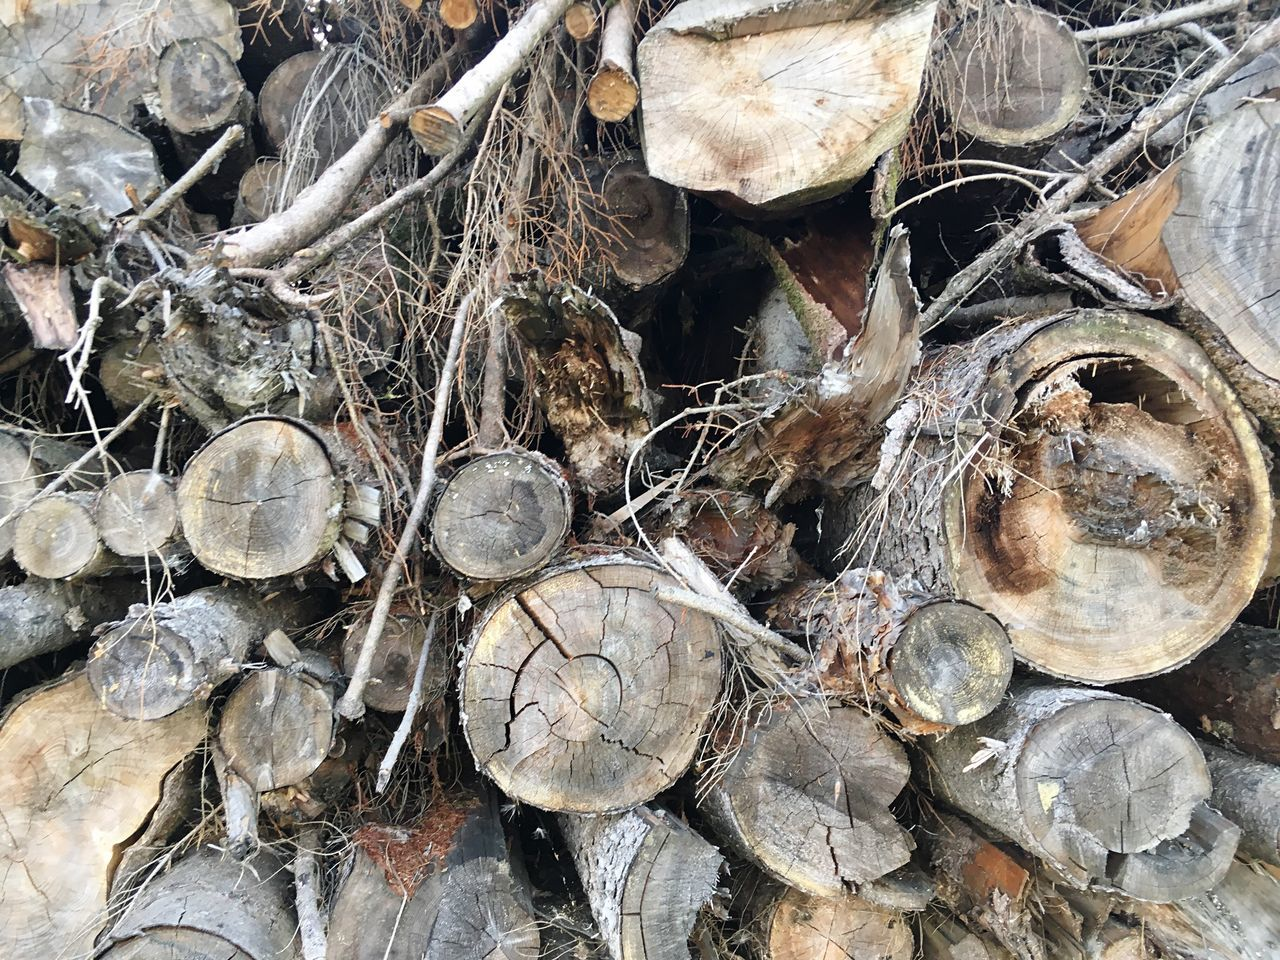 stack, timber, log, heap, woodpile, forestry industry, large group of objects, full frame, abundance, no people, day, close-up, outdoors